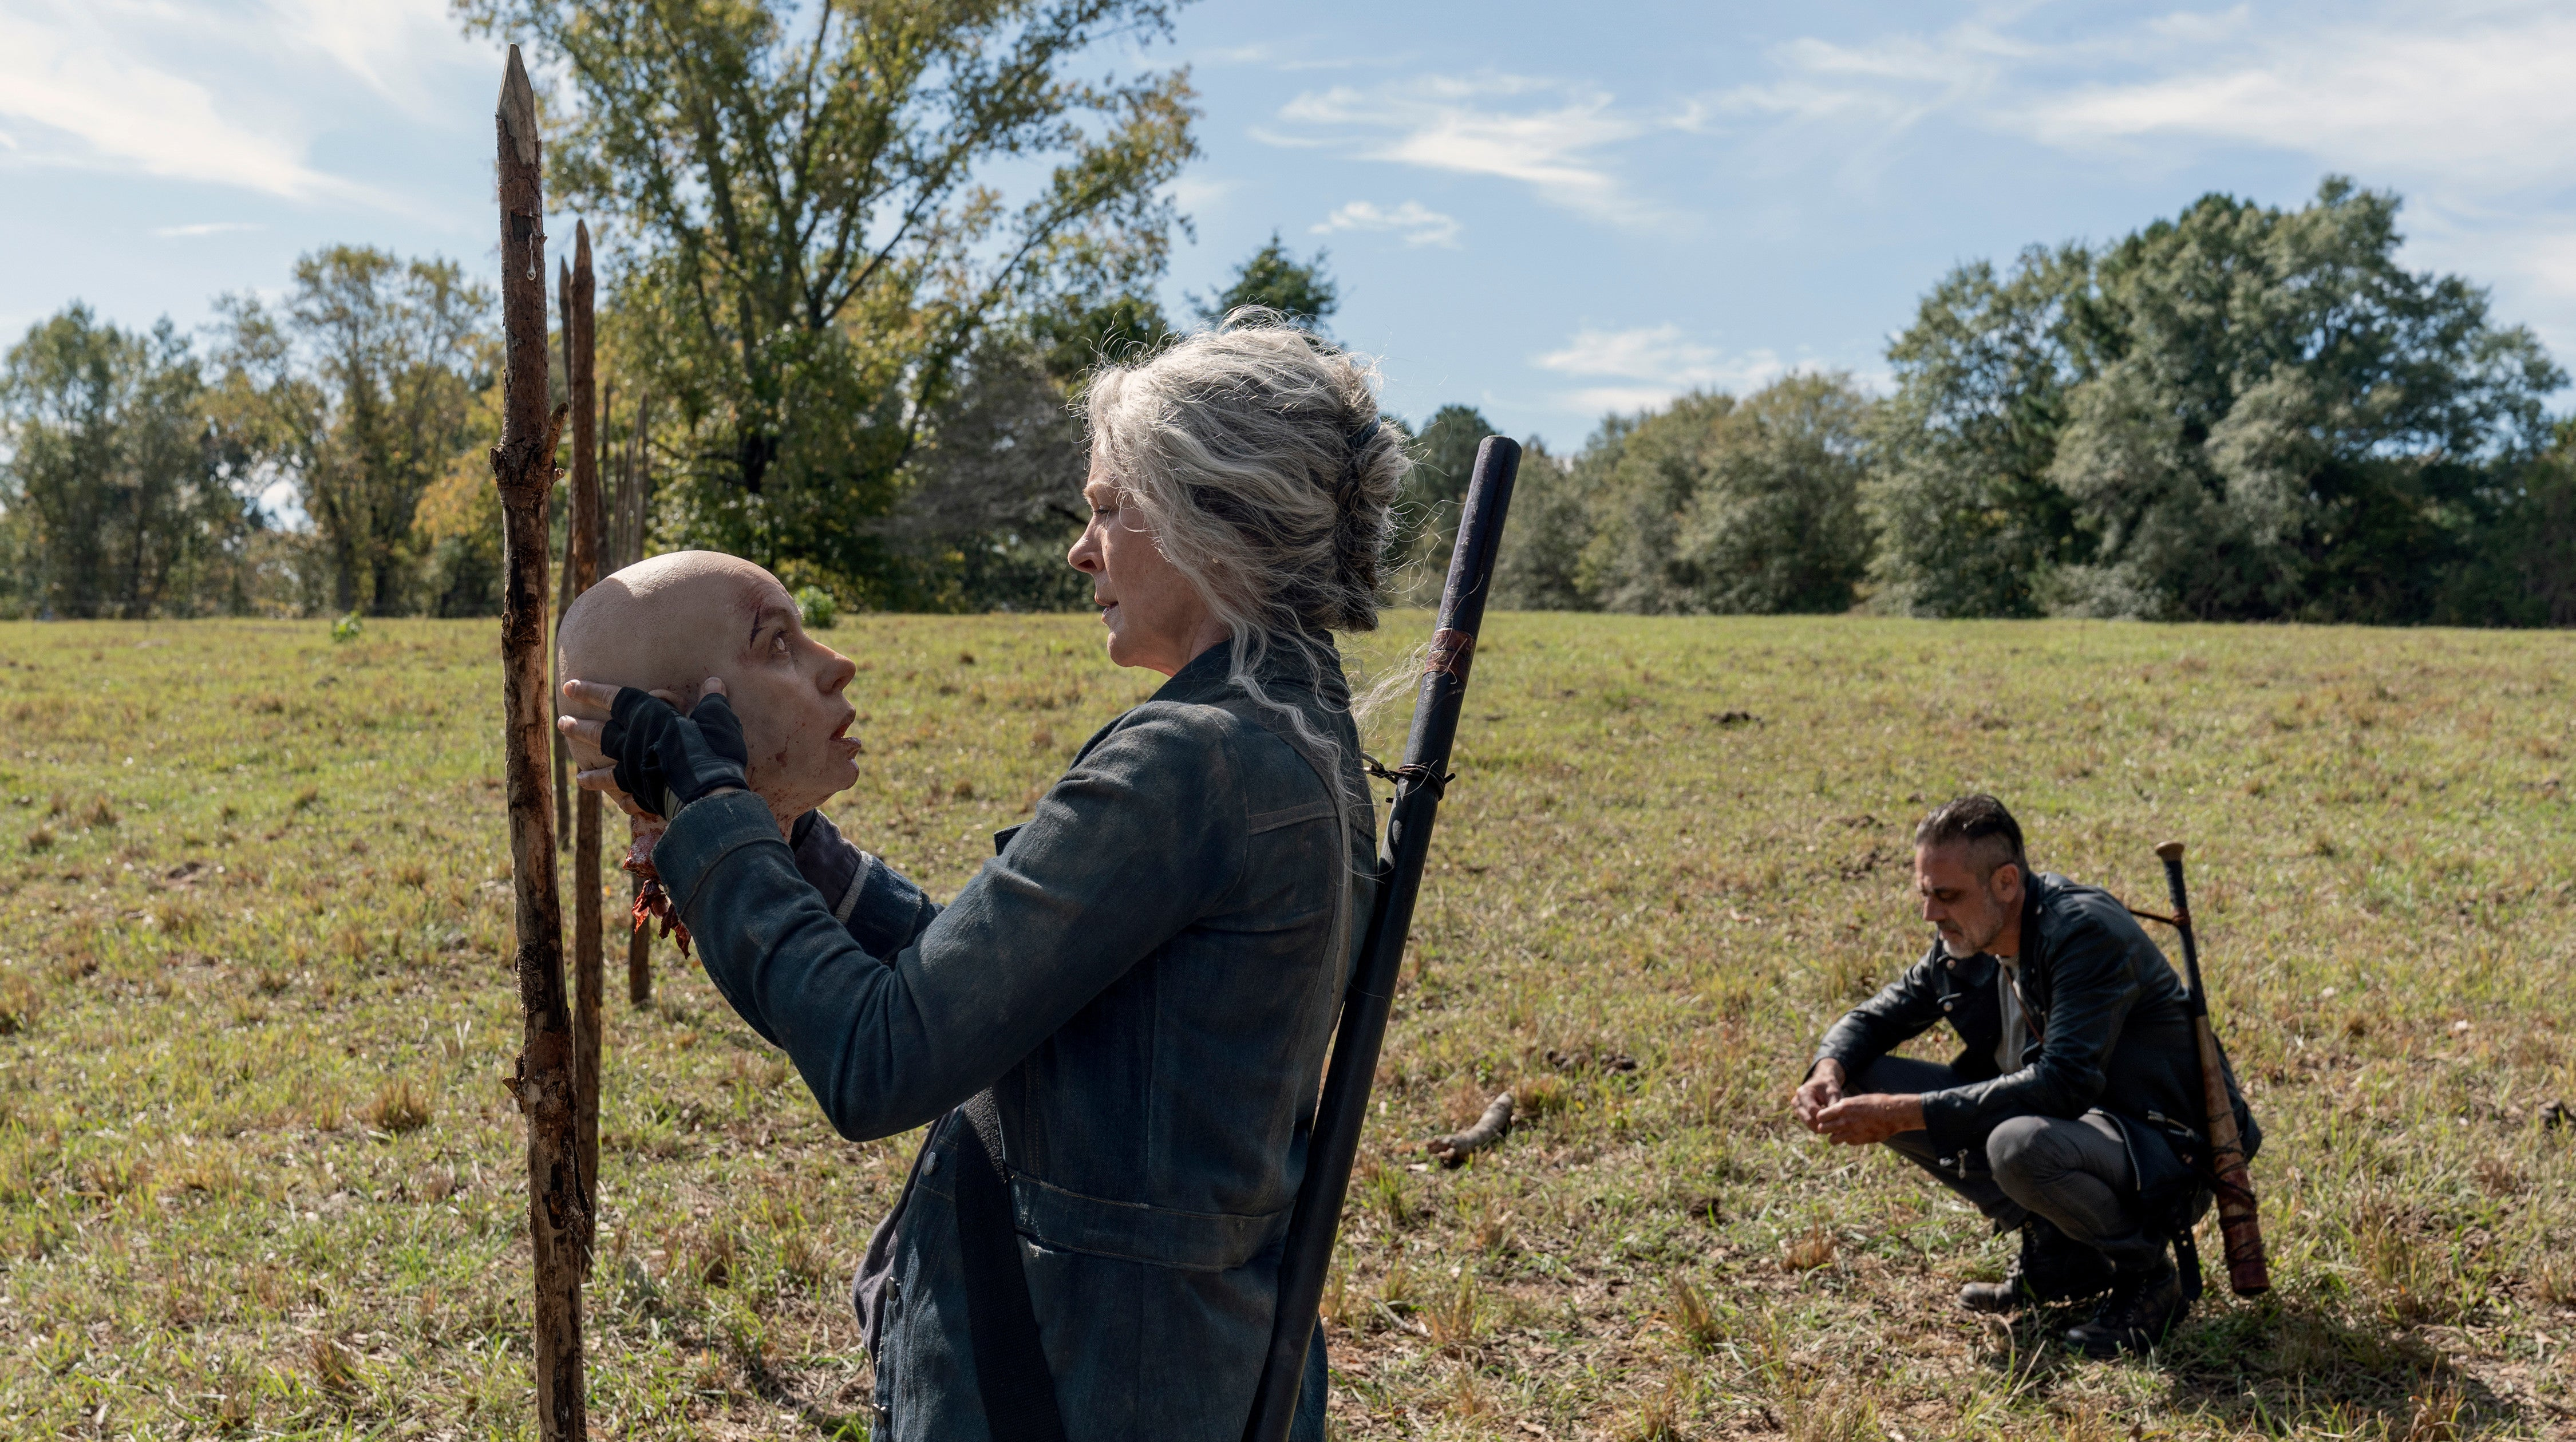 Even Decapitated, Alpha's Still A Major Threat On The Walking Dead